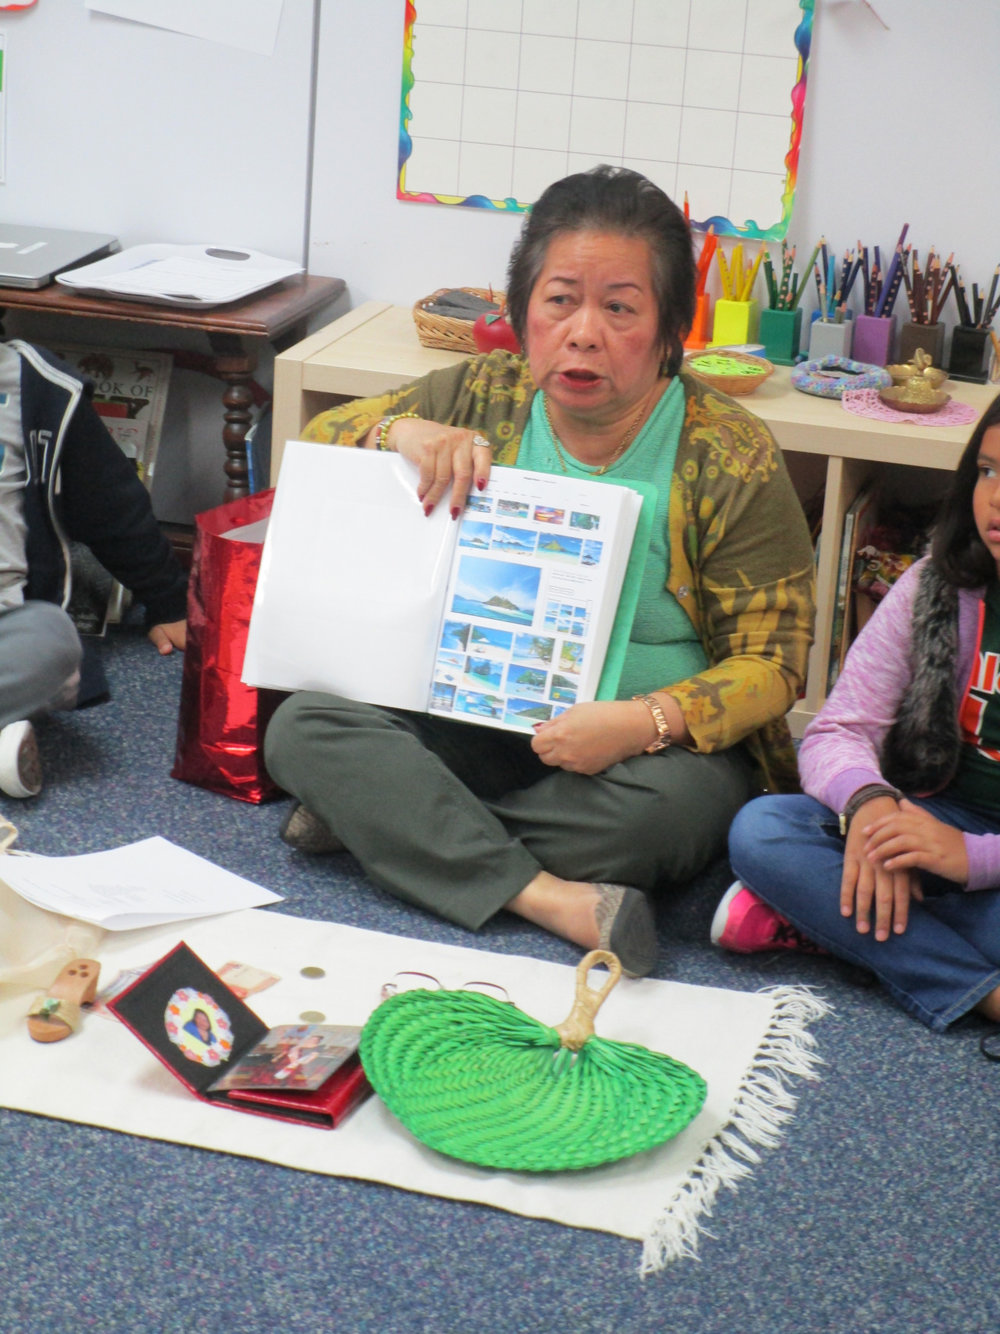 Ms. Maris shared a presentation about her native country of The Philippines with Lower Elementary North students. The children enjoyed her pictures and stories, as the class is studying Asia right now.